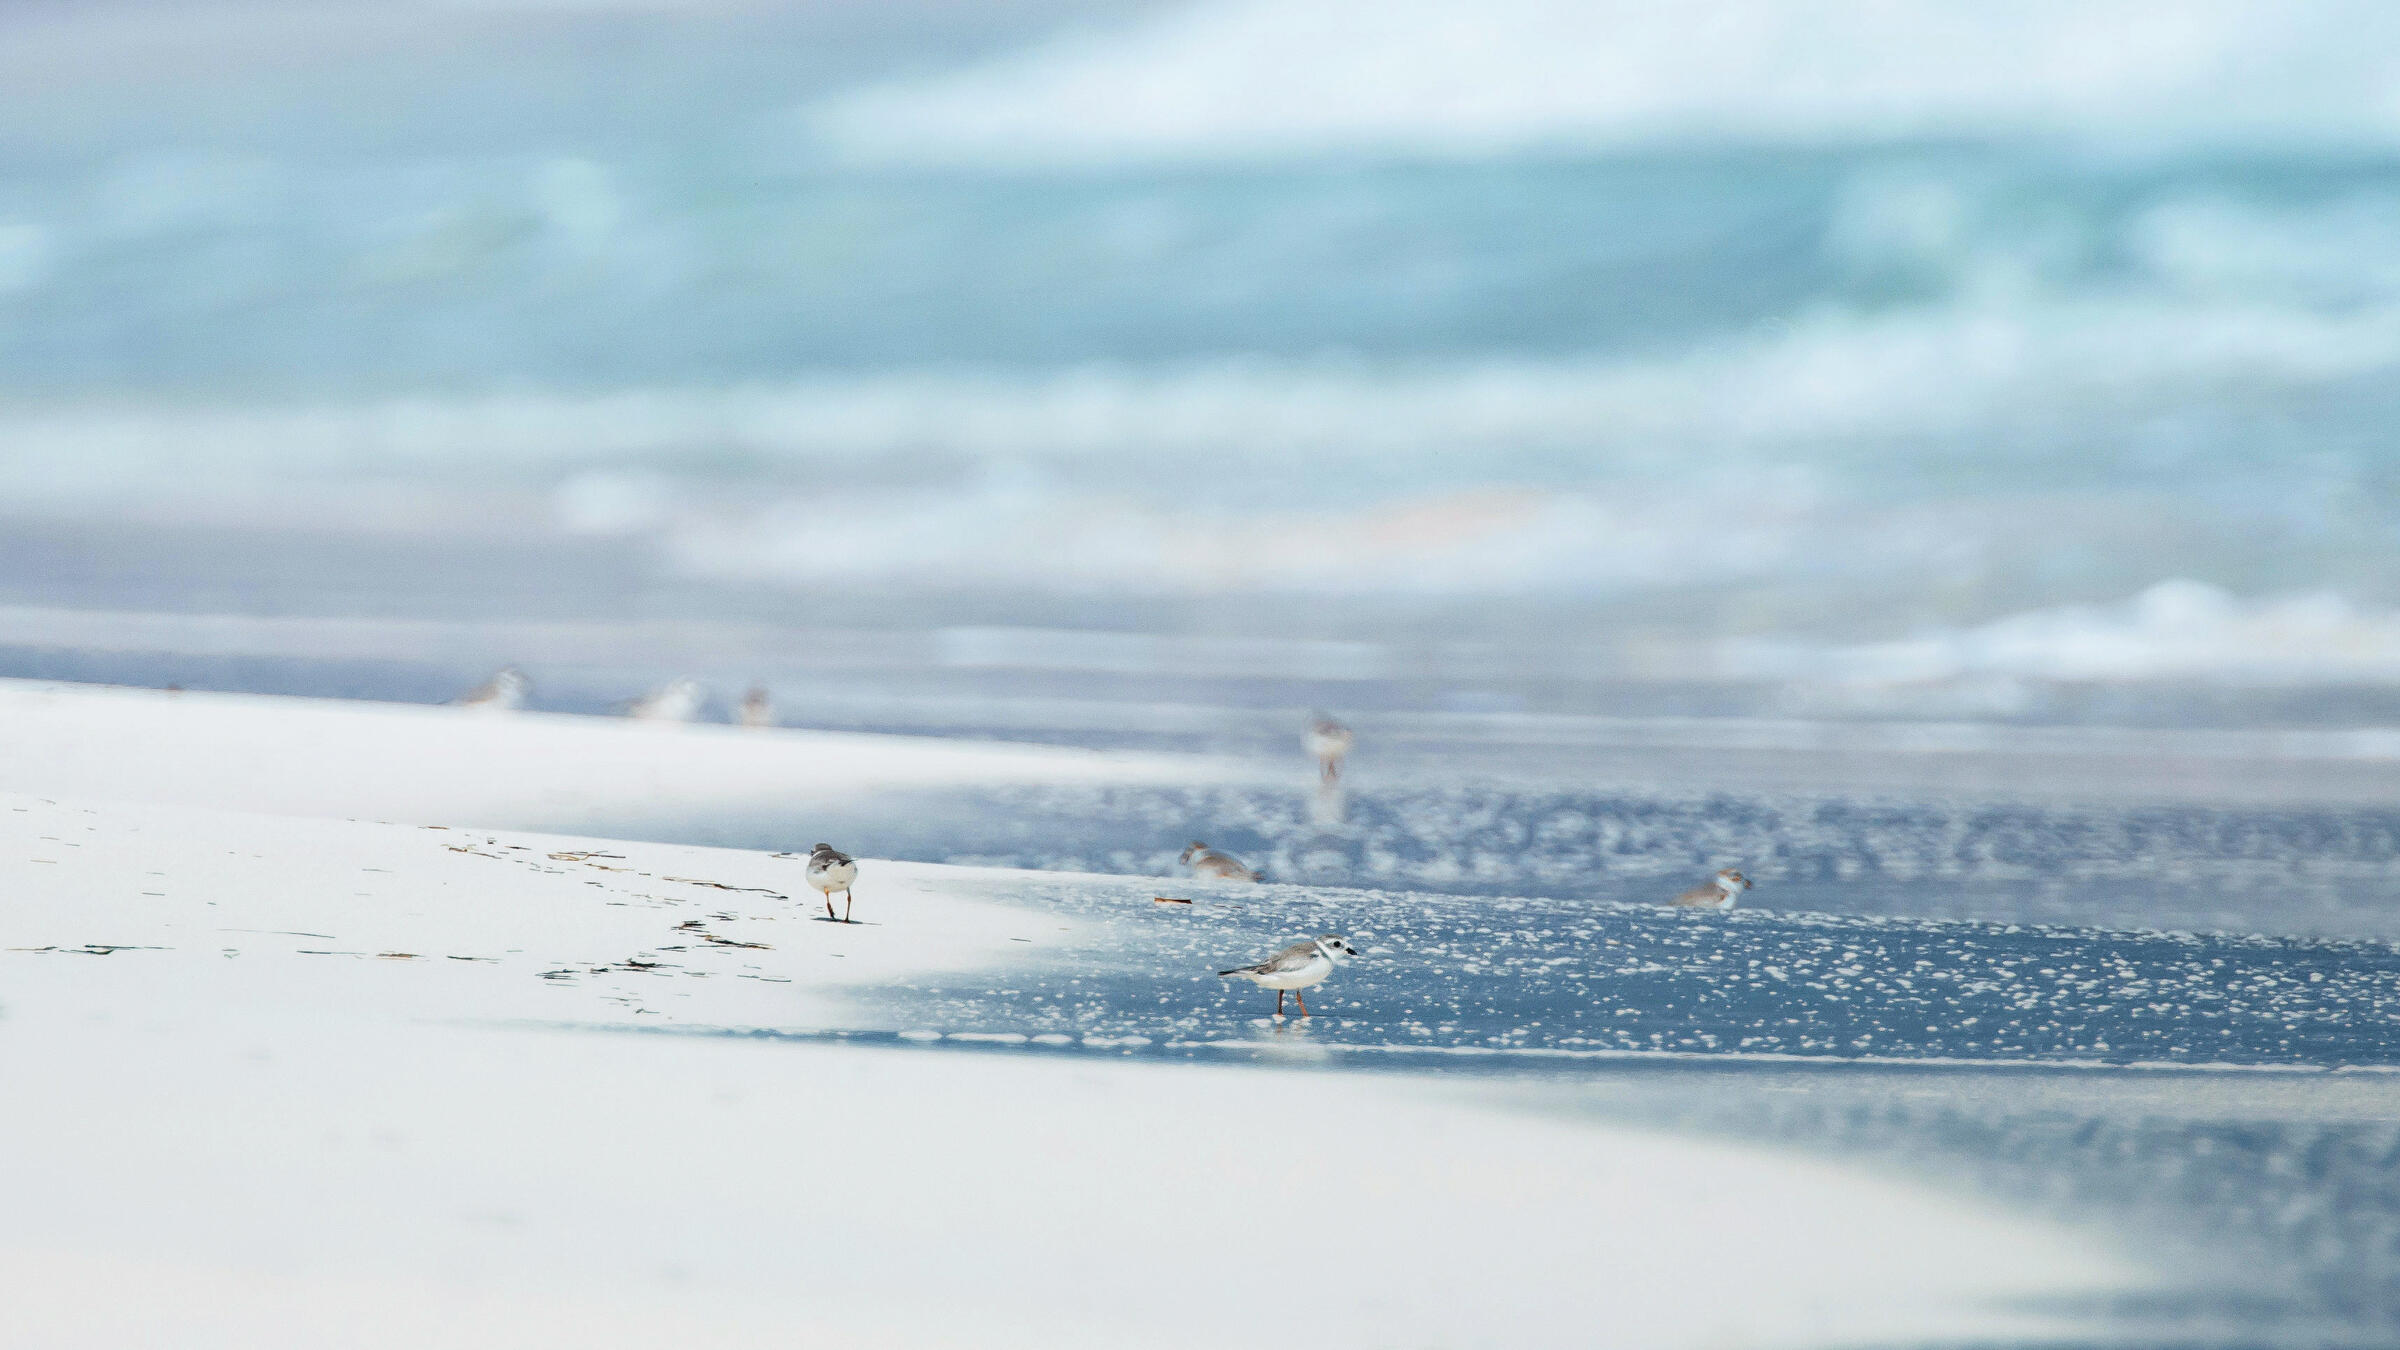 Piping Plovers on the island of Abaco, part of the Bahamas. Walker Golder/Audubon